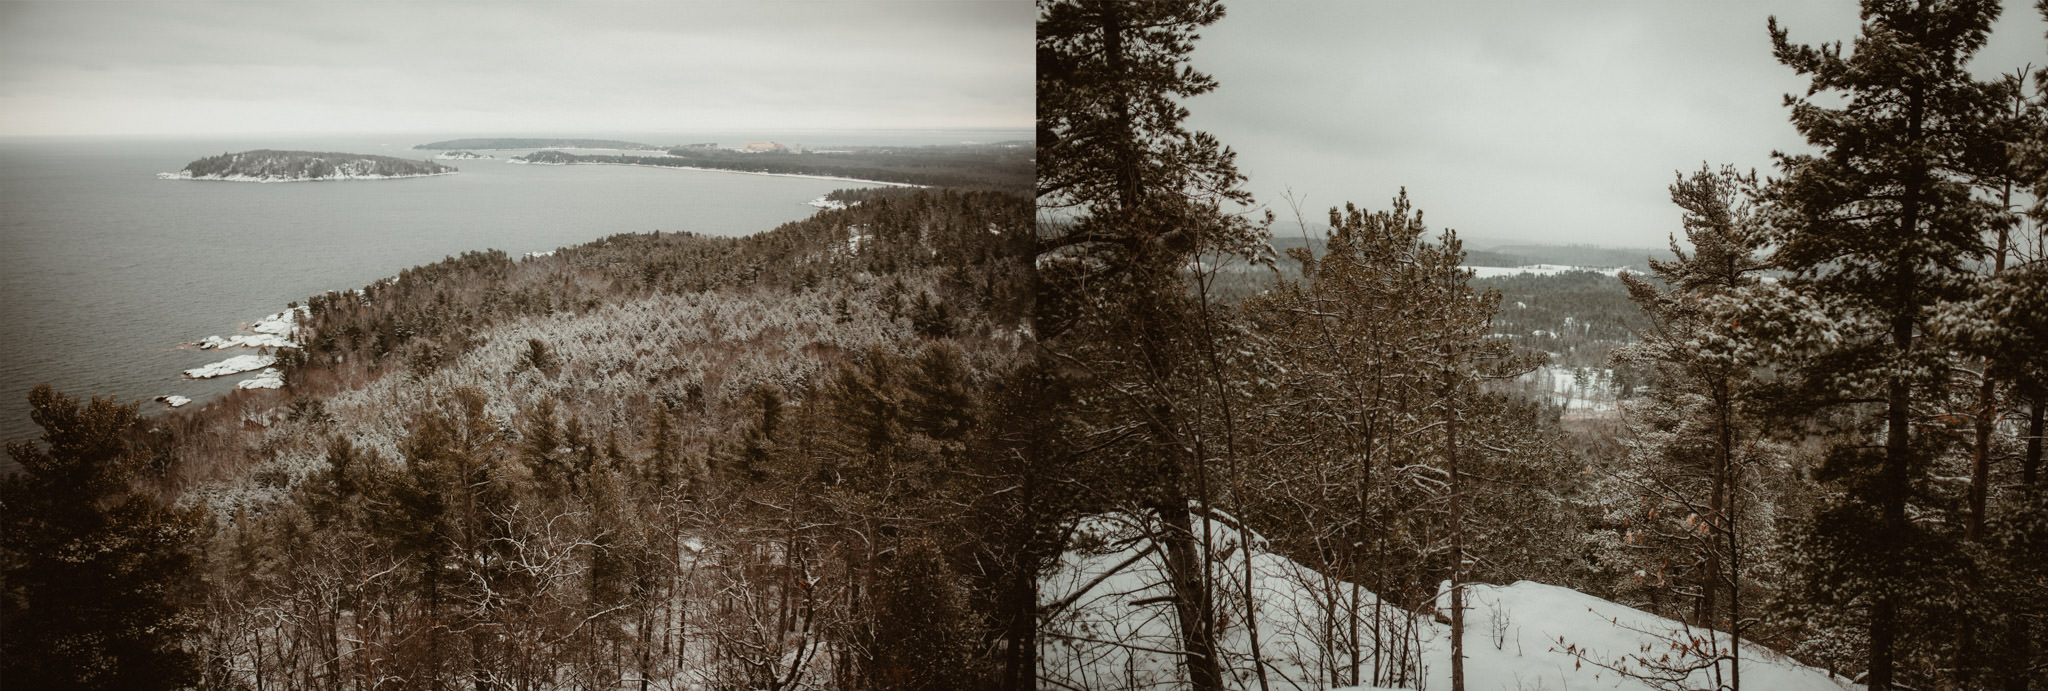 Sugarloaf Mountain in winter